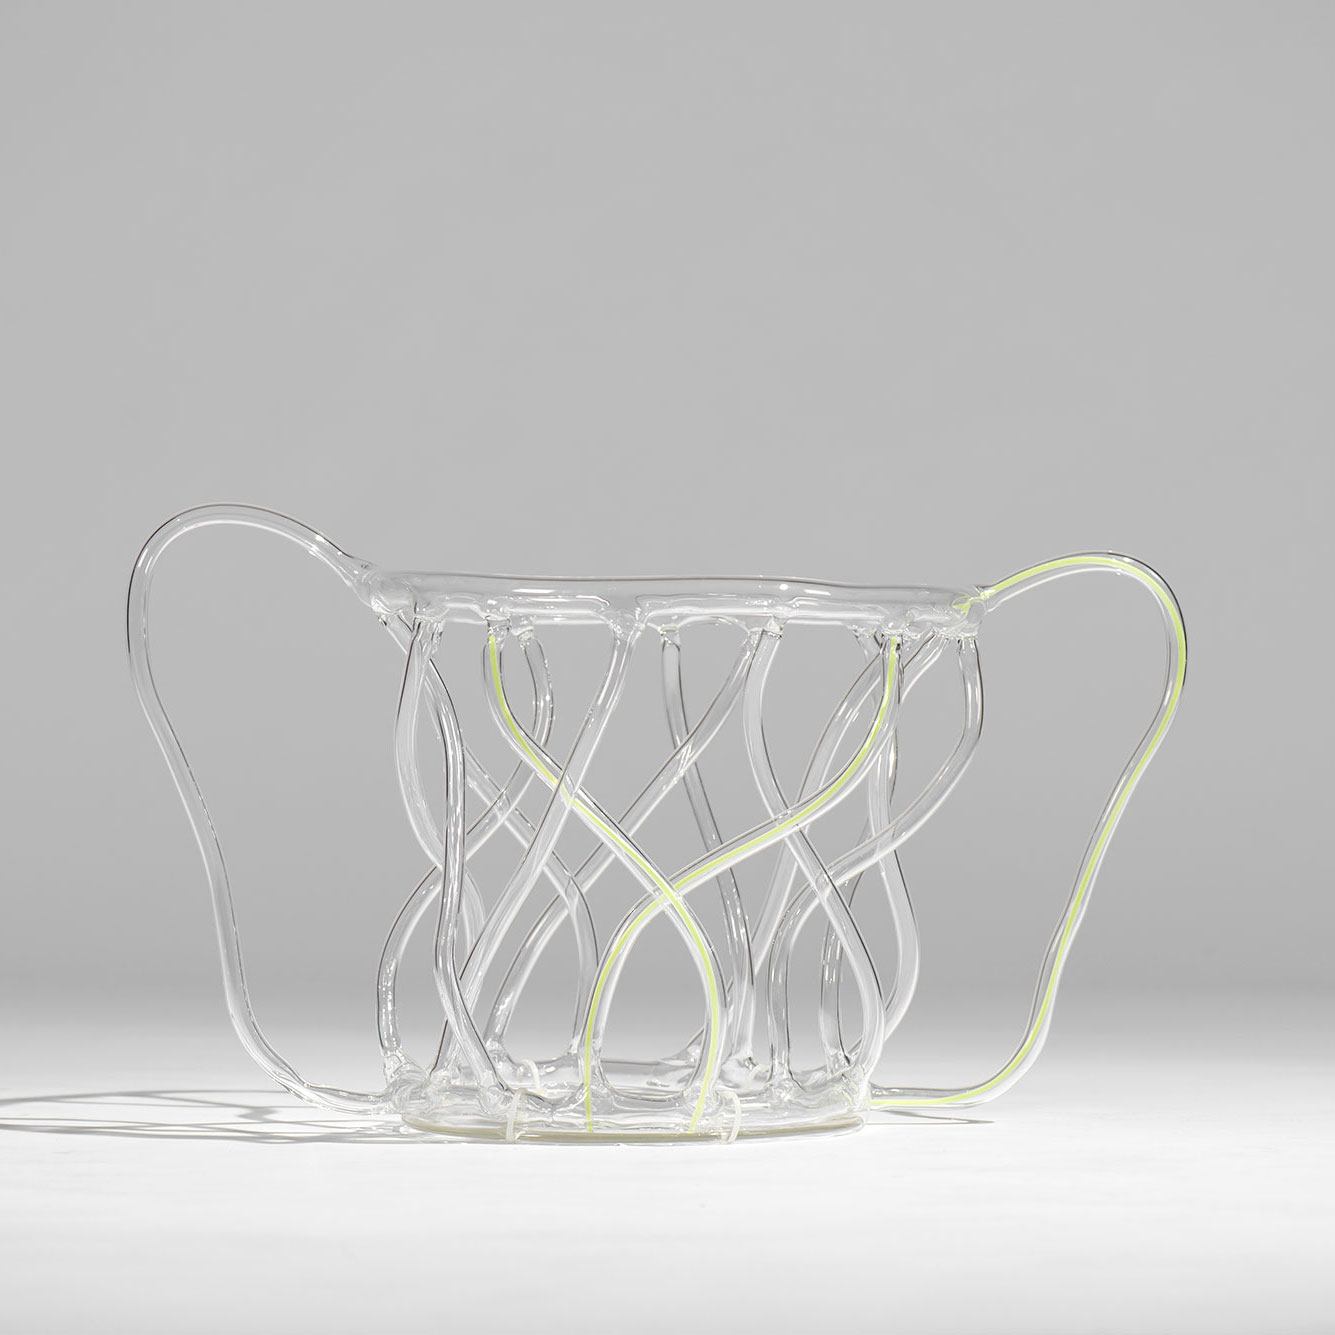 Andrea Branzi  |  Green Canaries - glass basket